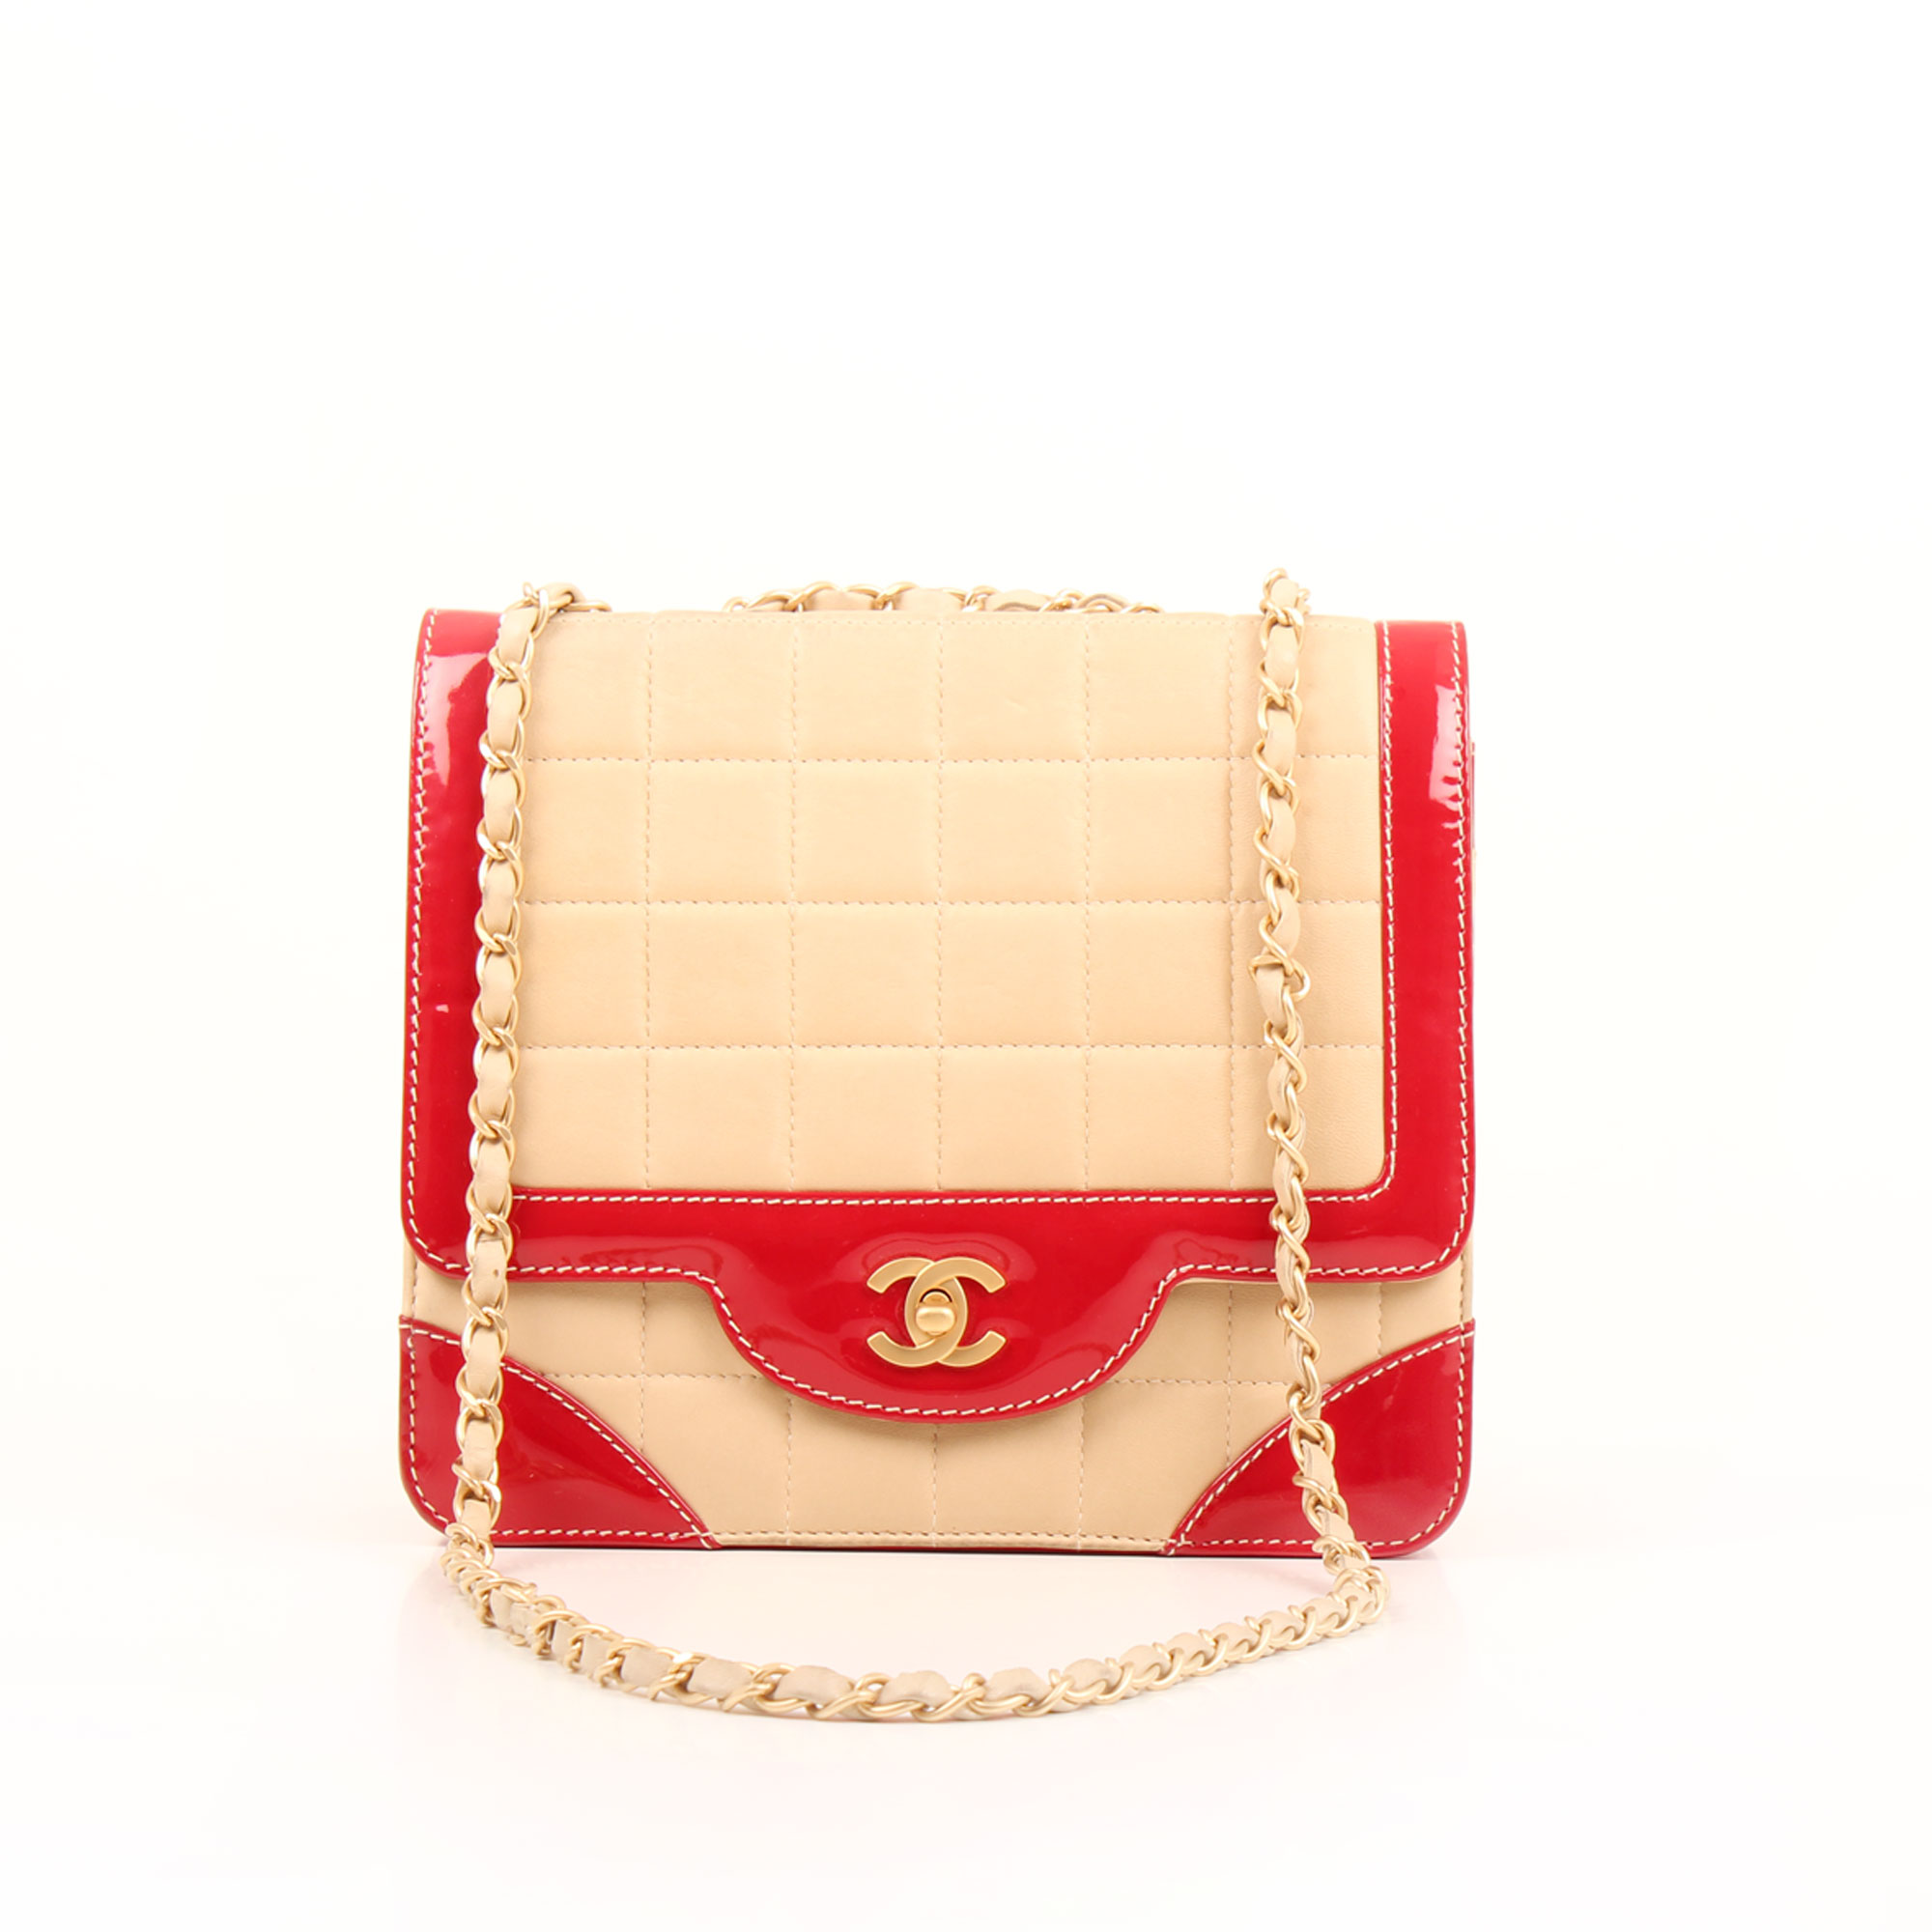 Imagen frontal del bolso chanel bicolor choco bar solapa unica